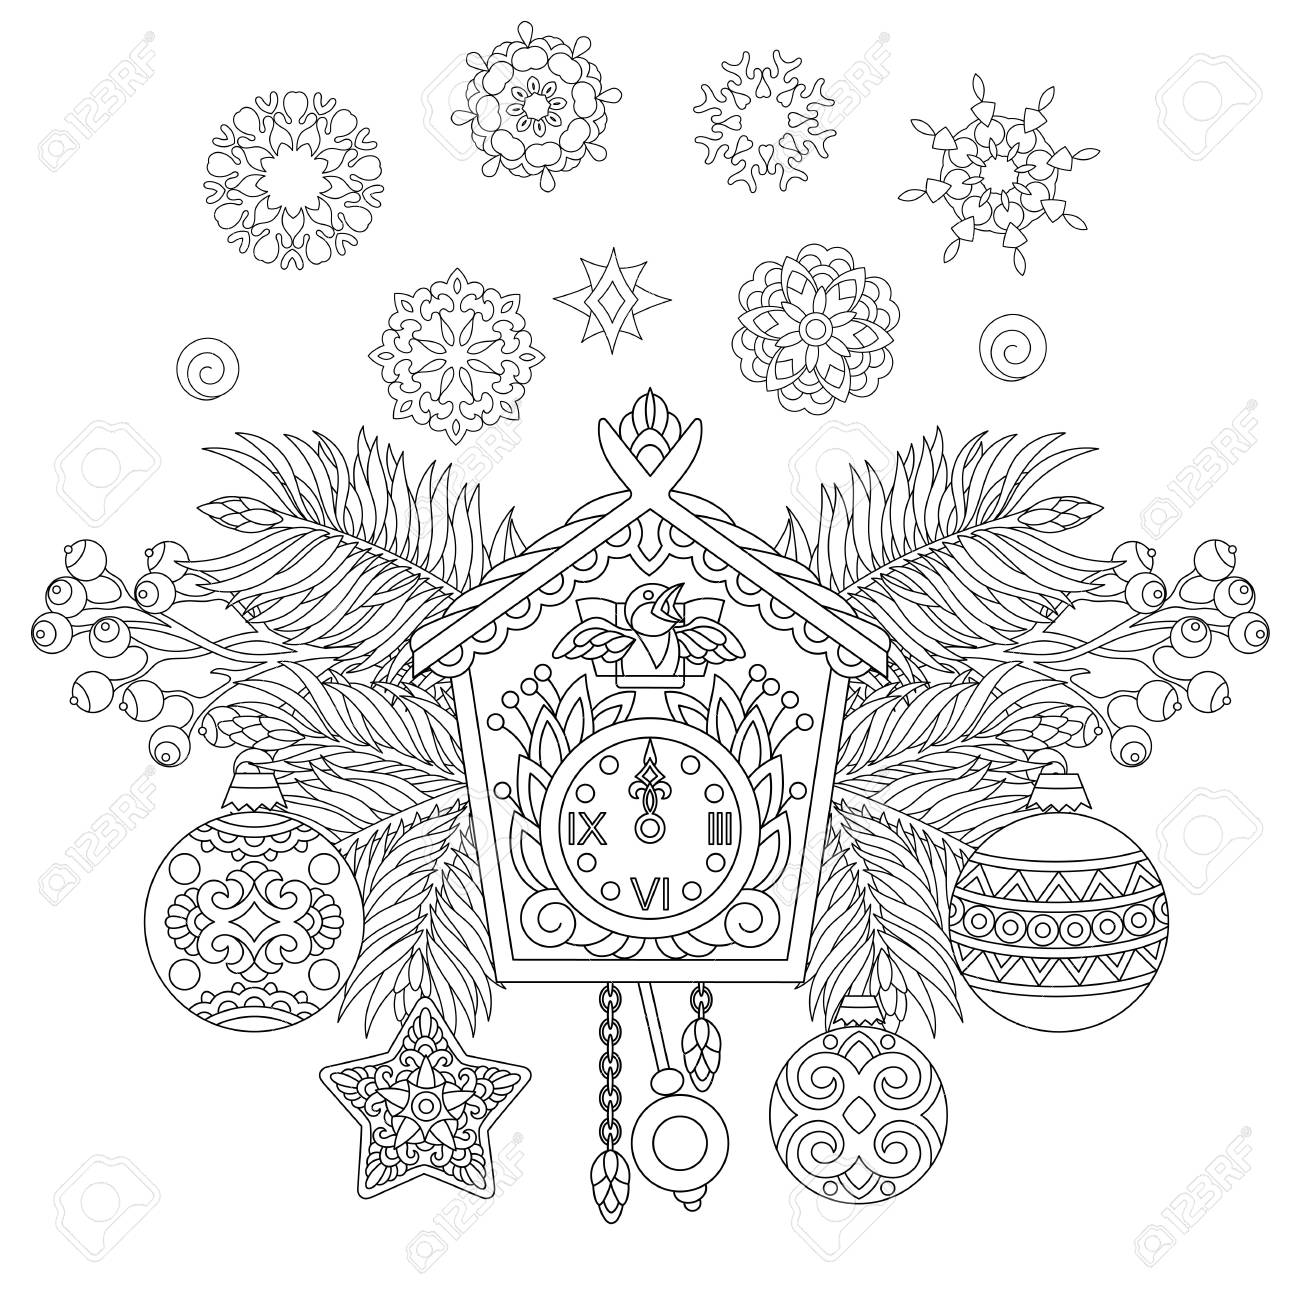 christmas coloring page holiday hanging decorations and fir tree branches around wall cuckoo clock